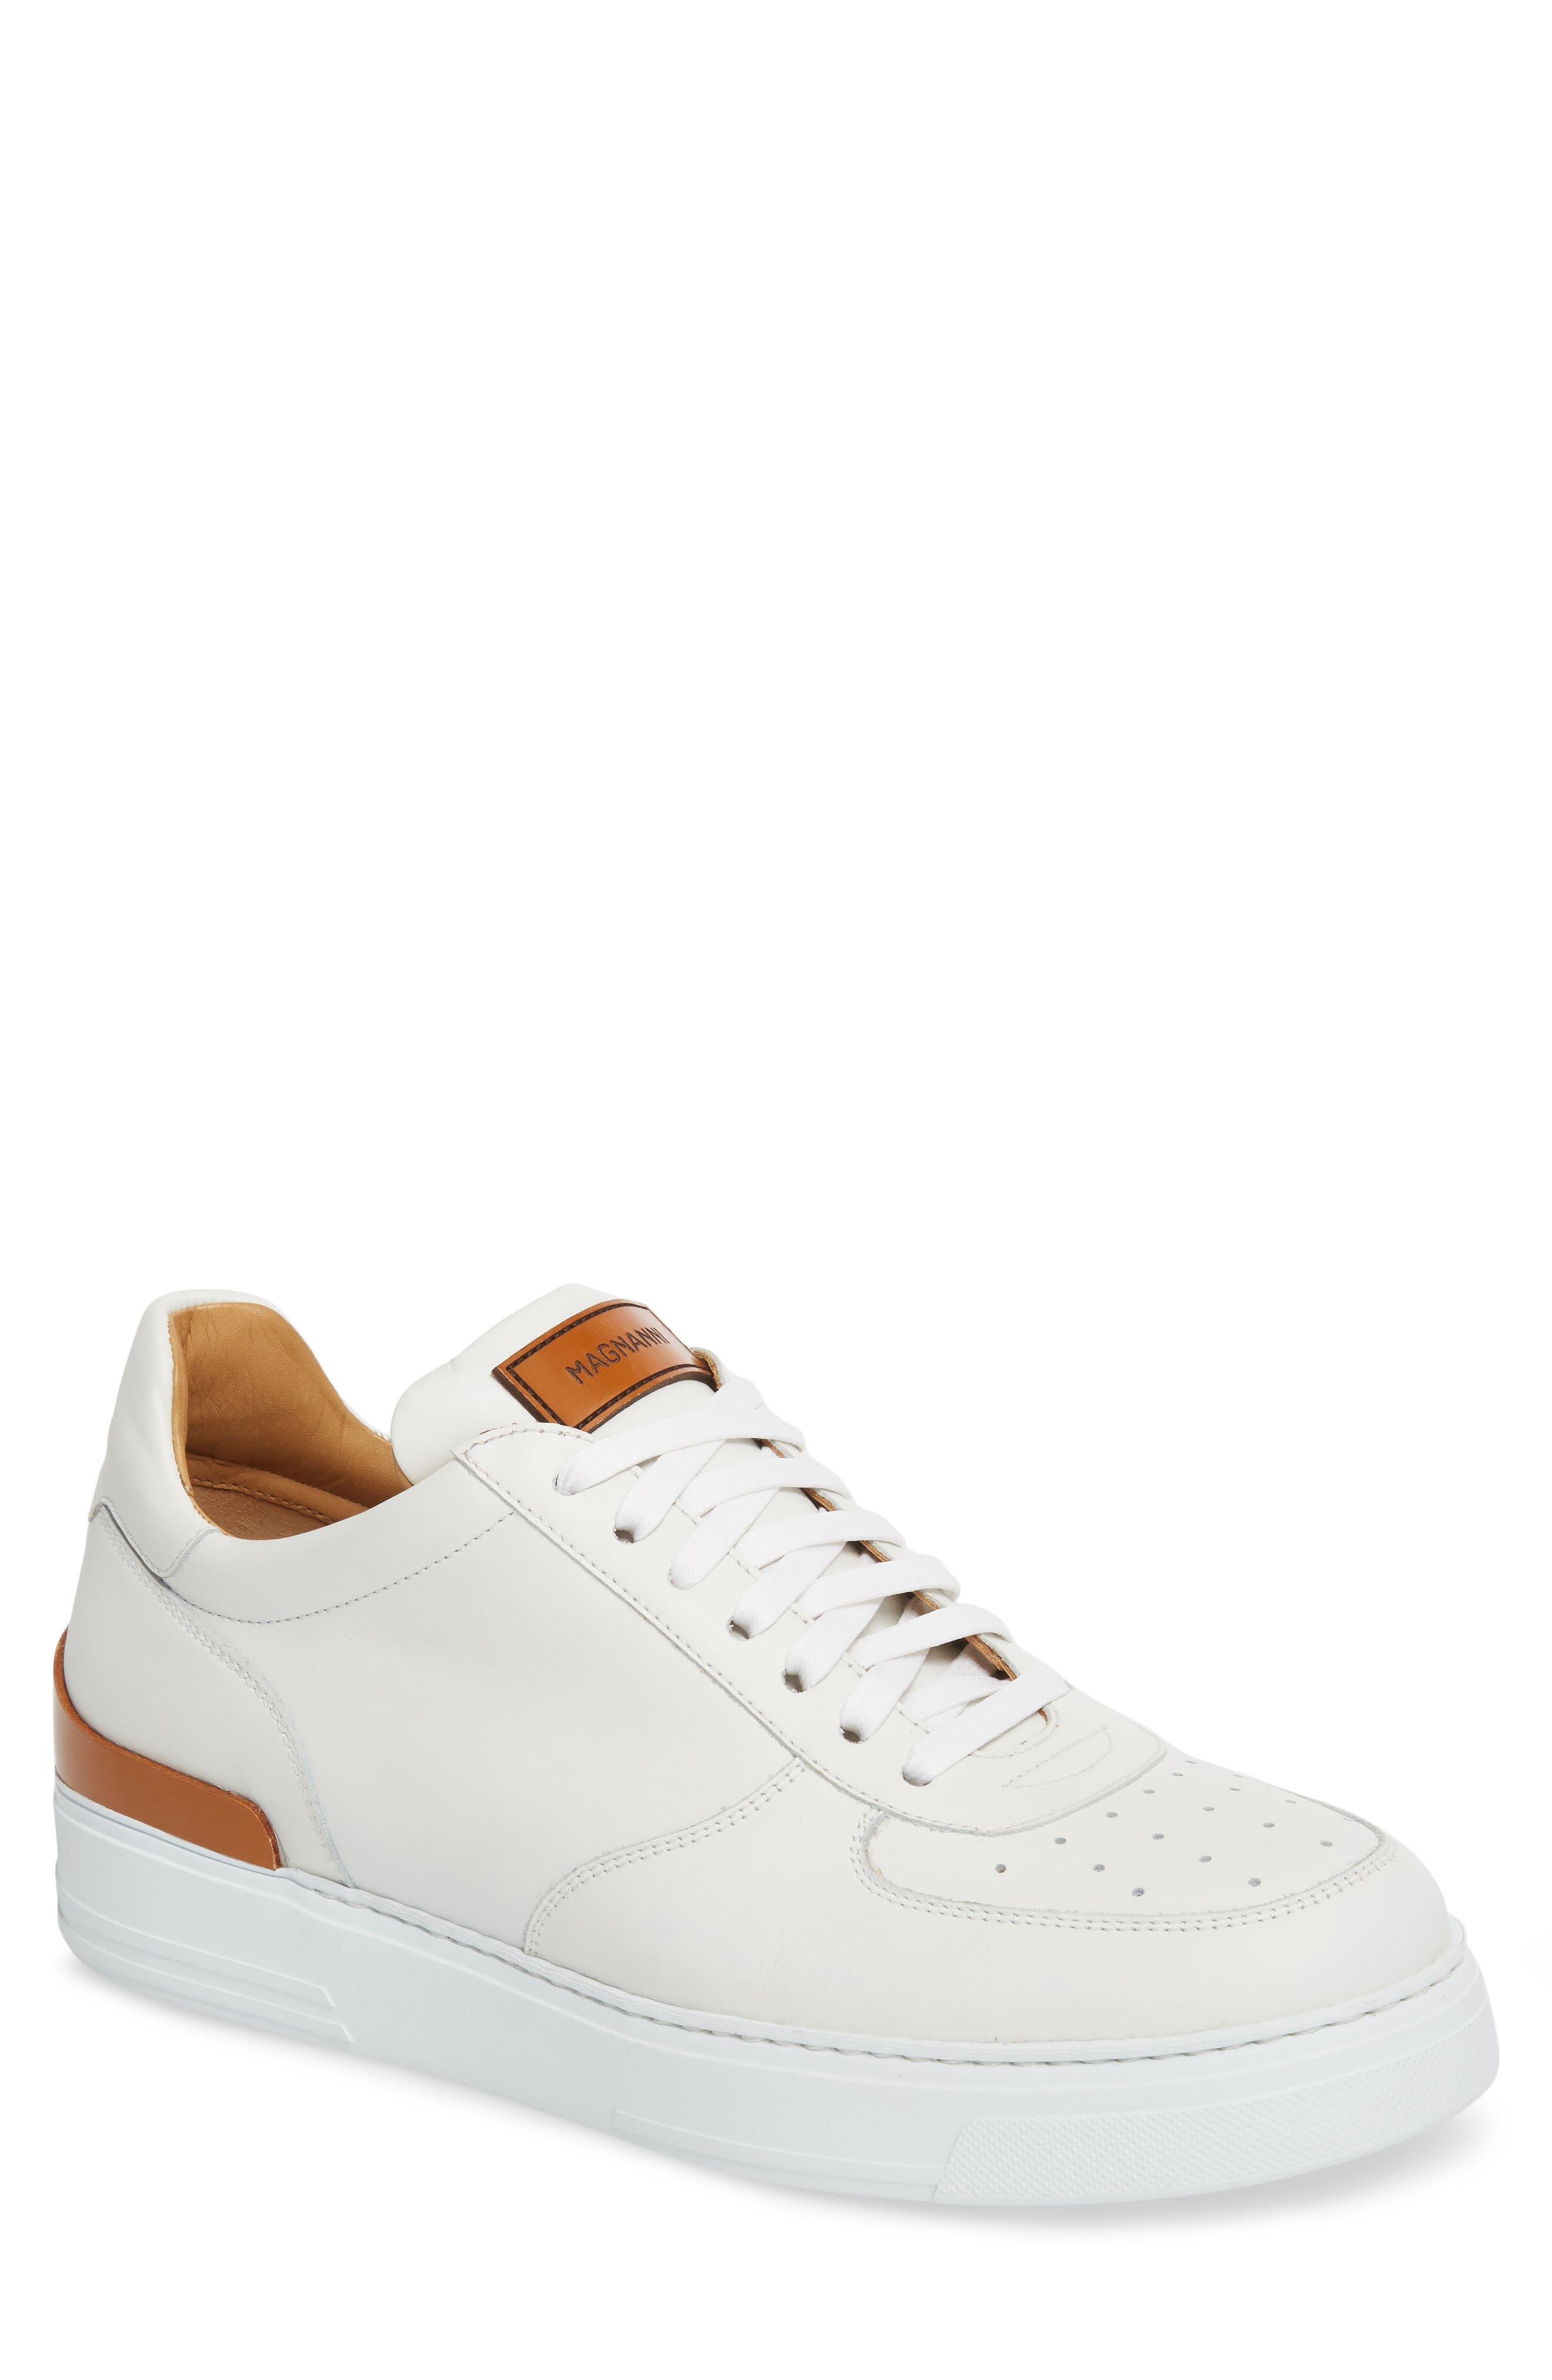 Vada Lo Lace Up Sneaker,                         Main,                         color, WHITE LEATHER